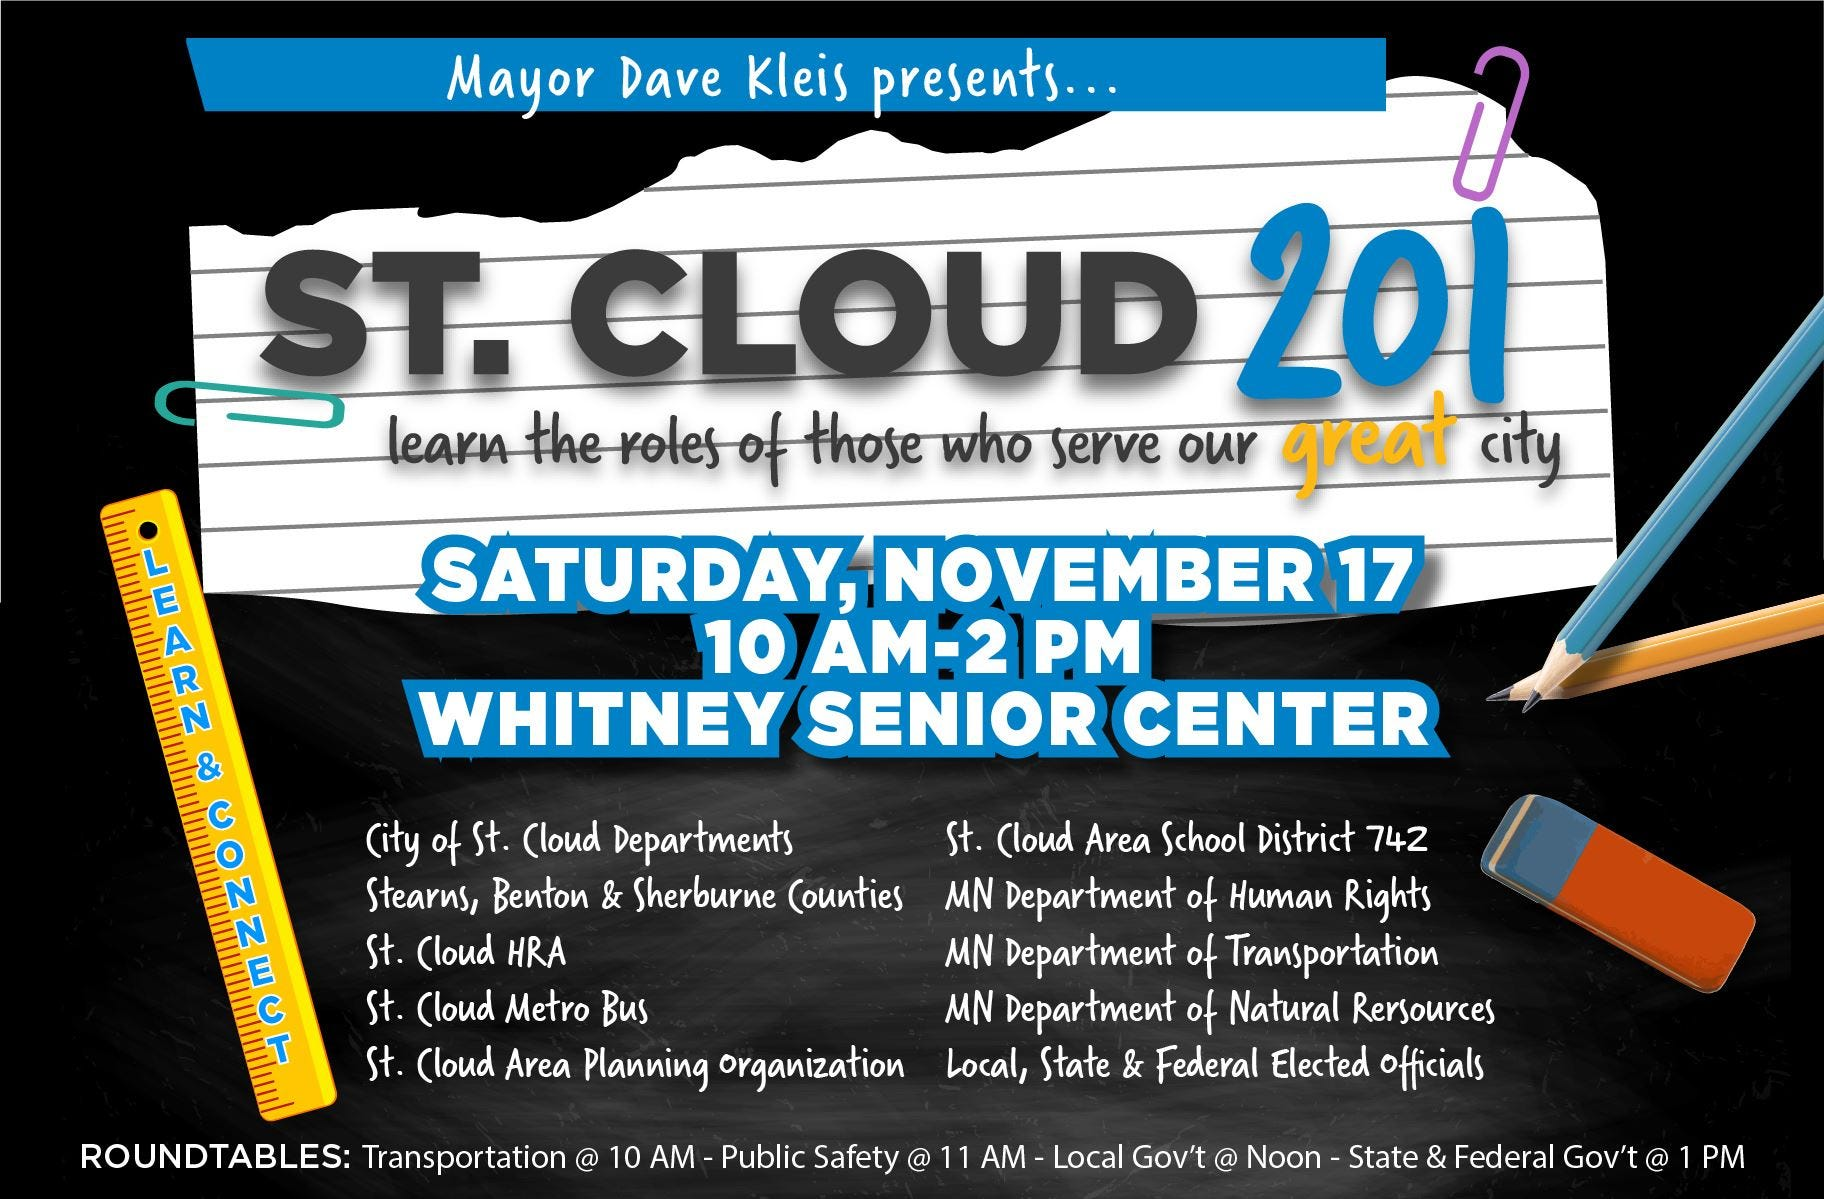 St. Cloud 201 is 10 a.m.-2 p.m. Saturday, Nov. 17 at Whitney Senior Center.